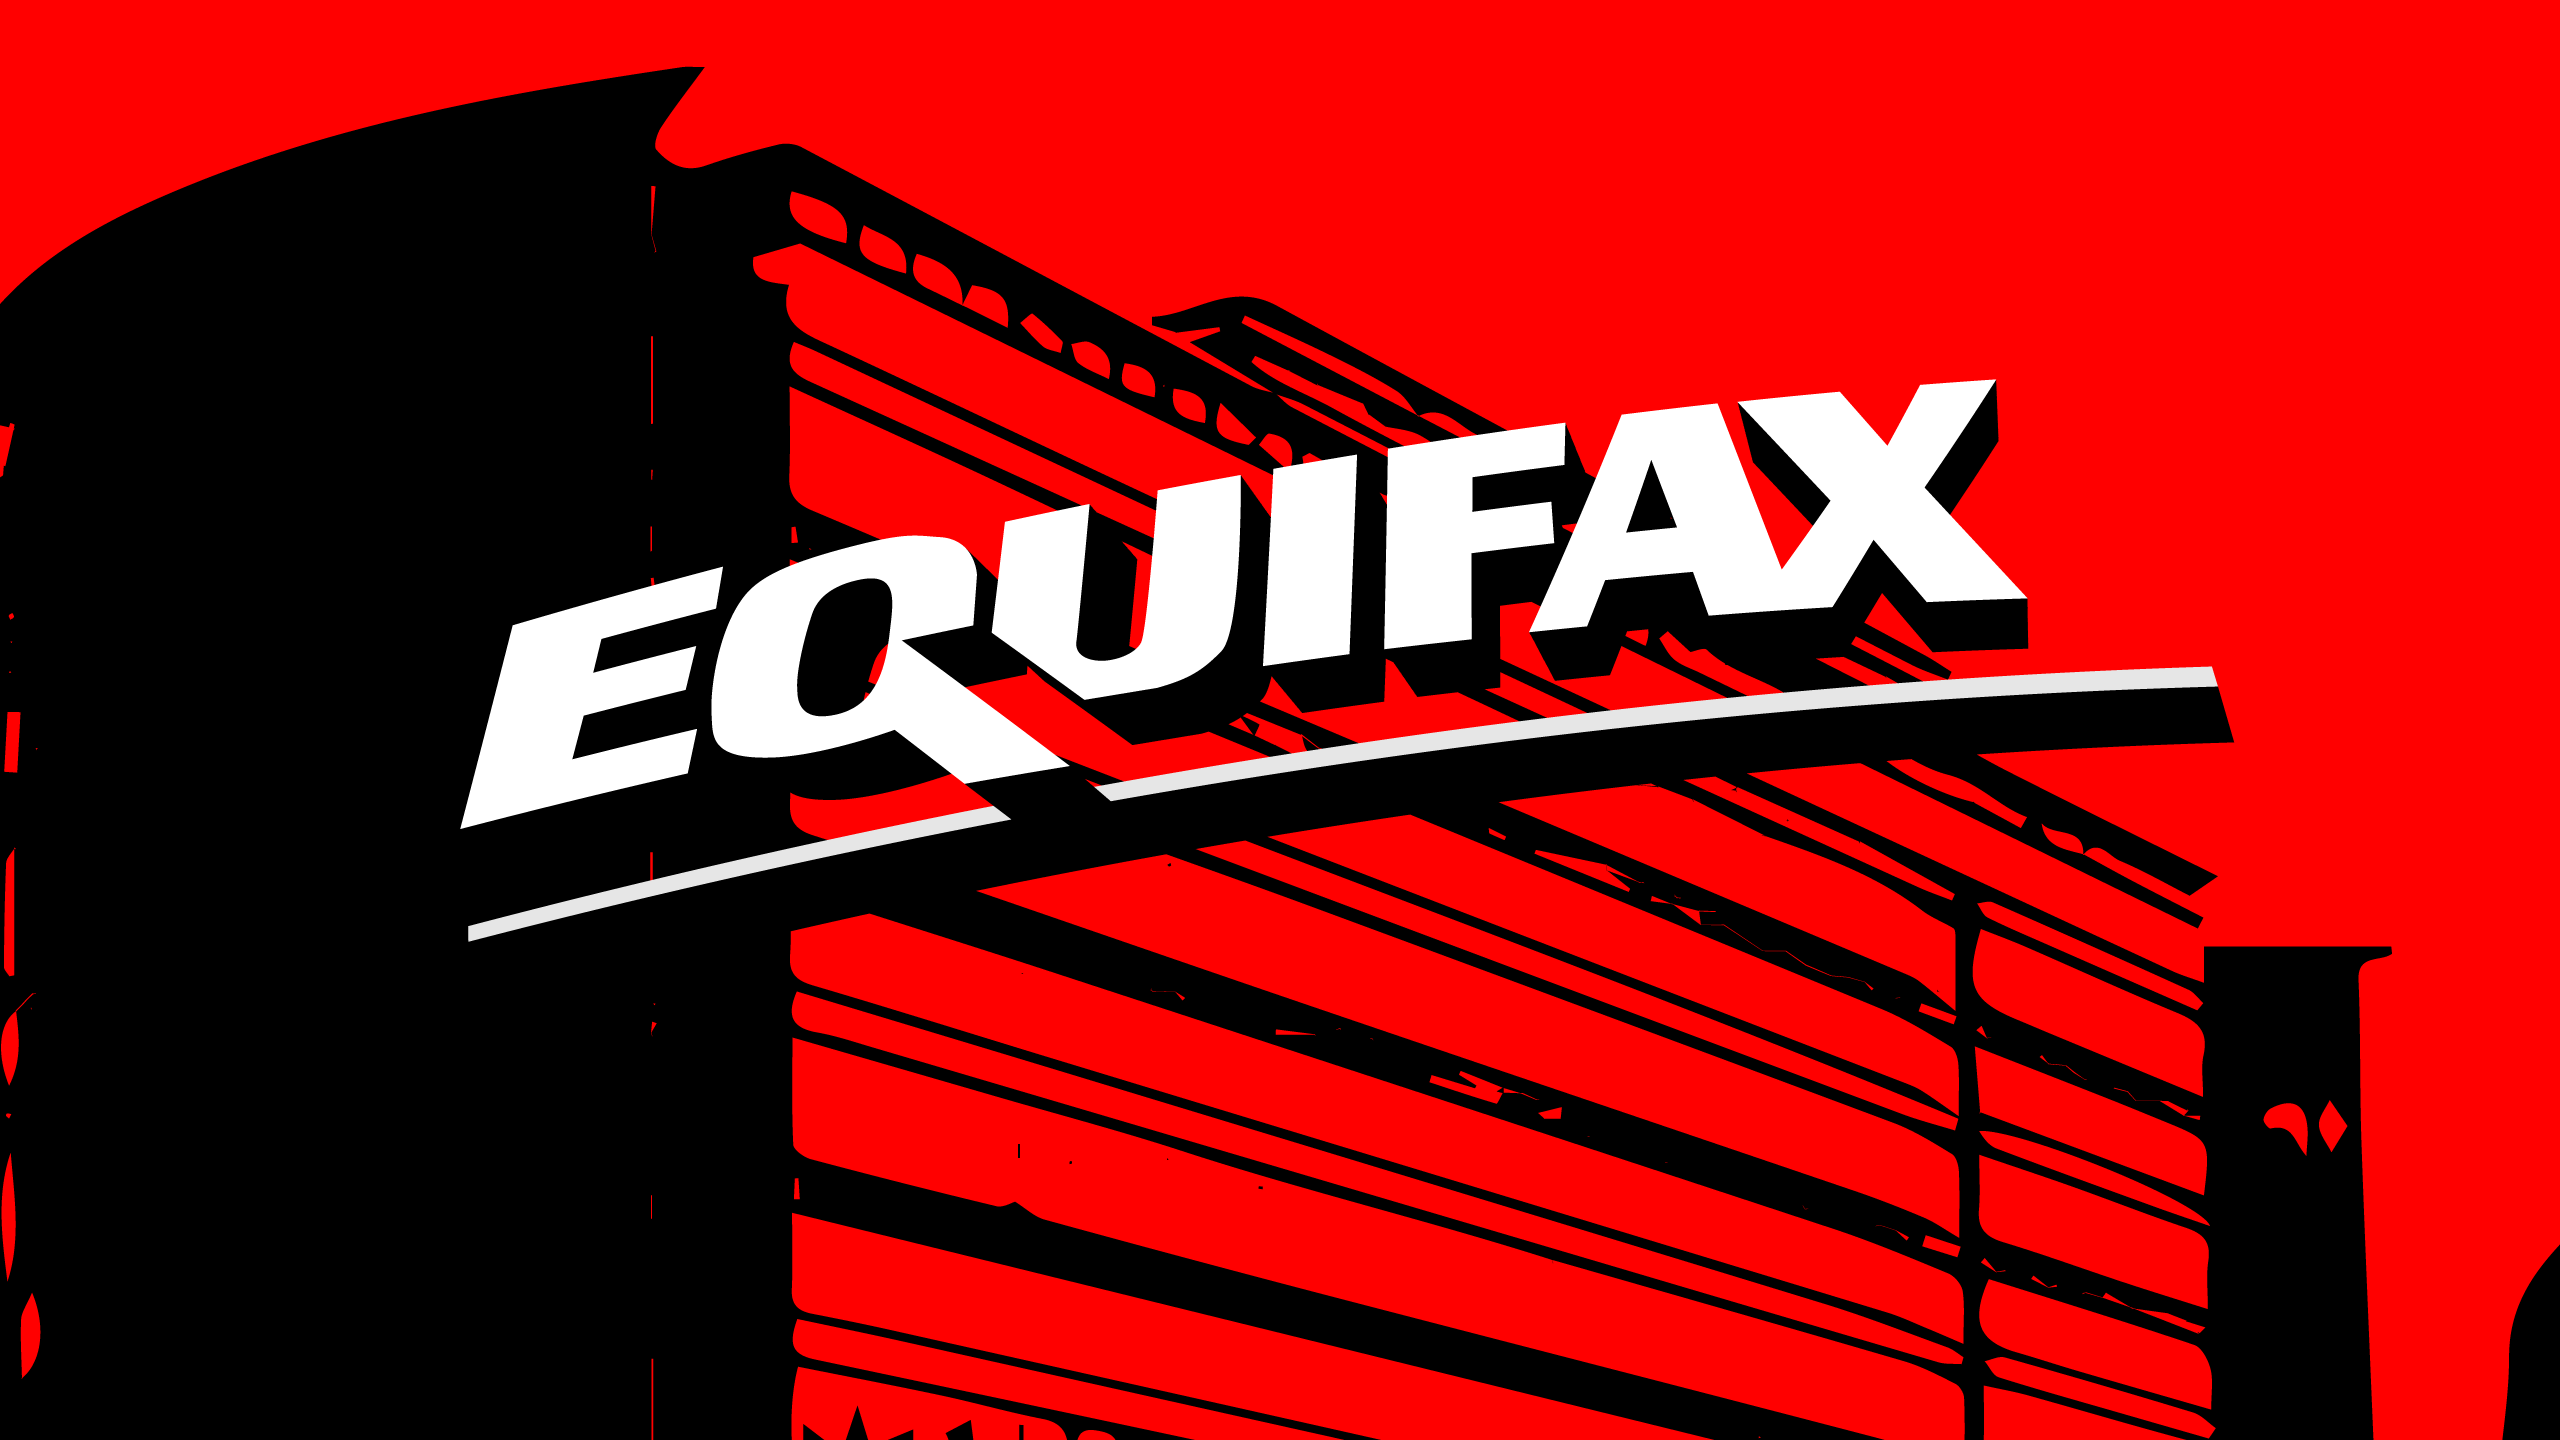 Equifax's stock is plummeting after it reported a massive security breach